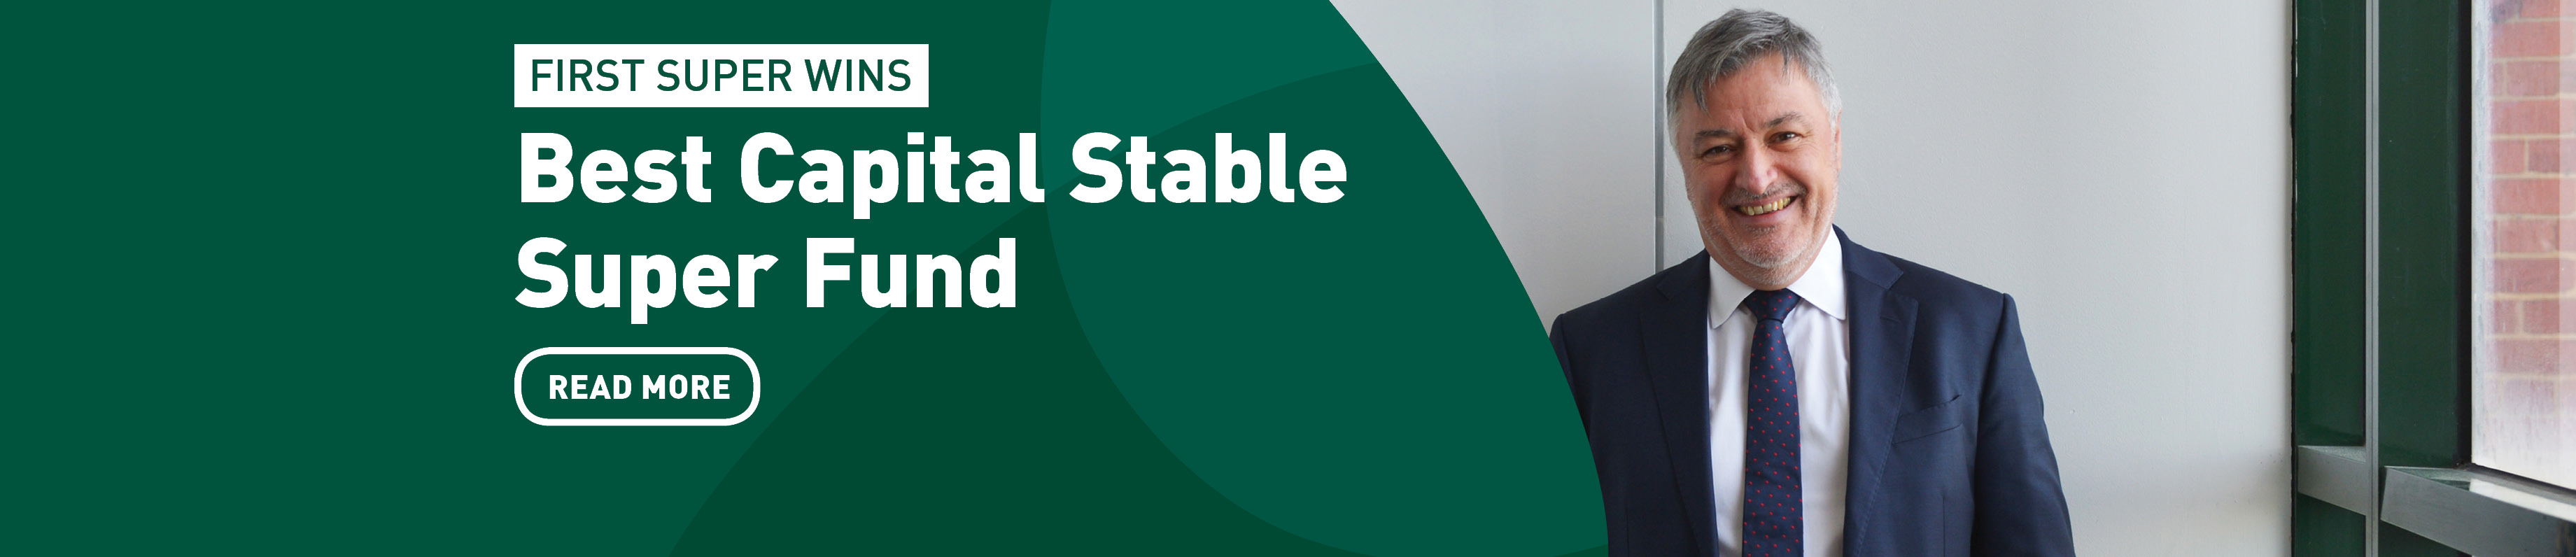 Homepage banner - best capital stable super fund - forest green